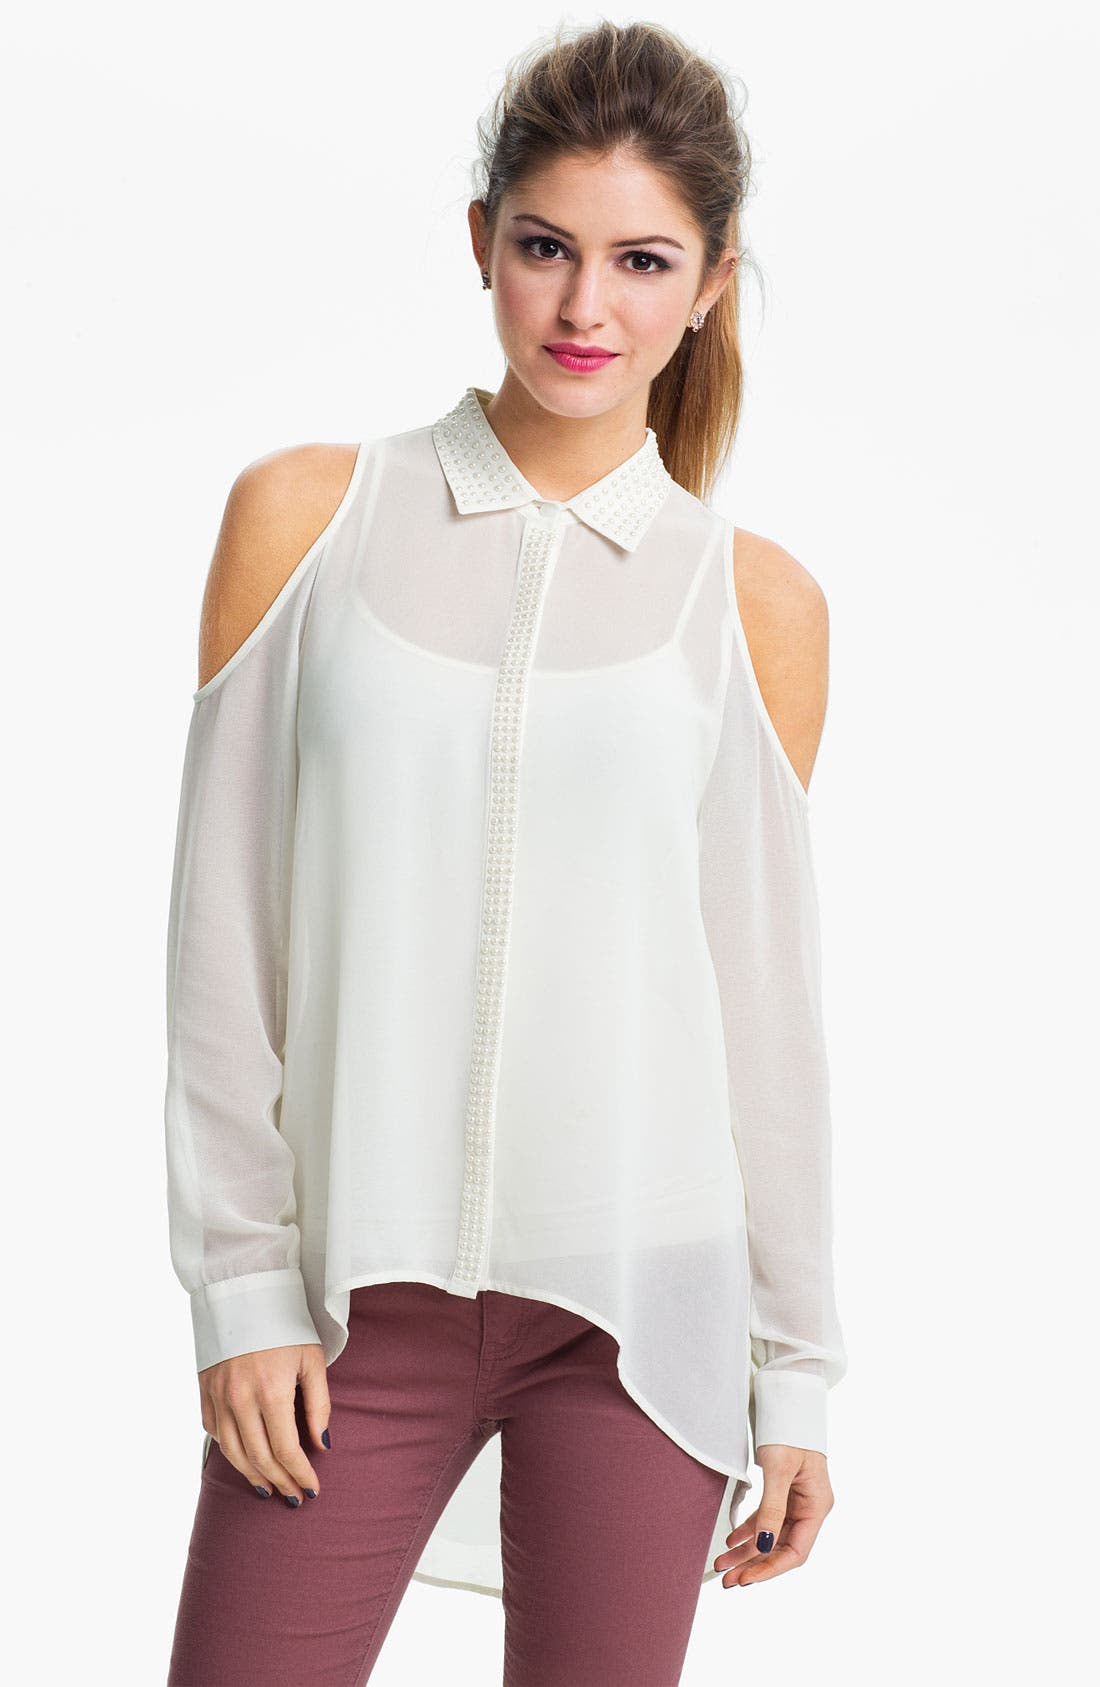 Alternate Image 1 Selected - Chloe K Pearl Embellished Cutout Shirt (Juniors)